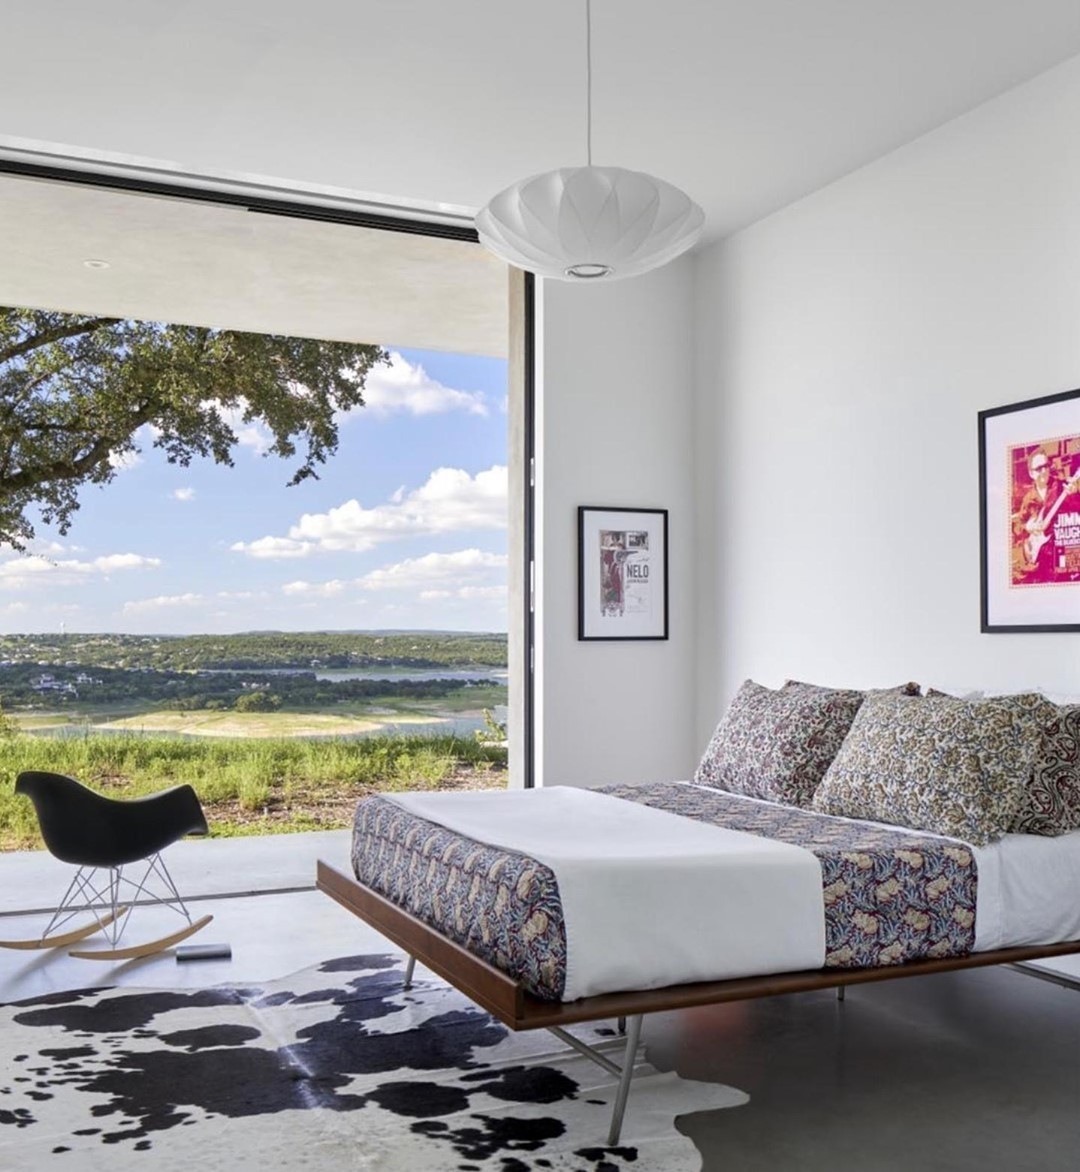 Rocking mid-century style overlooking the Texas Hill Country.⁠ ⁠ Built by @foursquarebuilders ⁠ Photo by @drorbaldingerphotographer ⁠ Designed by @dc_architecture